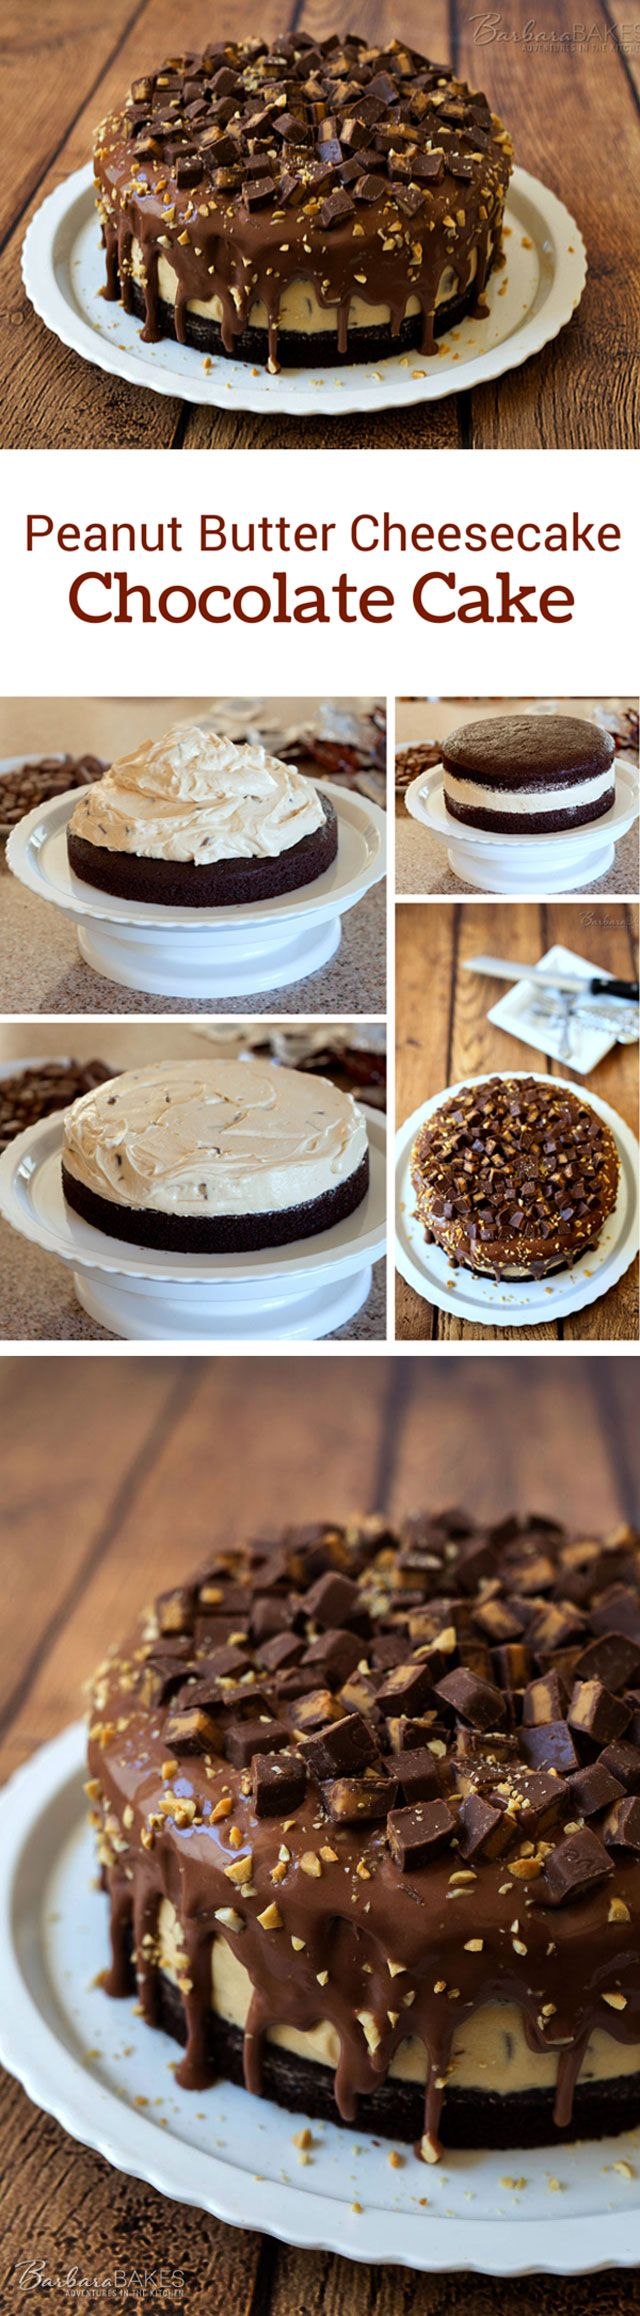 A rich, fudgy chocolate layer cake with a no-bake peanut butter cheesecake filling via @barbarabakes